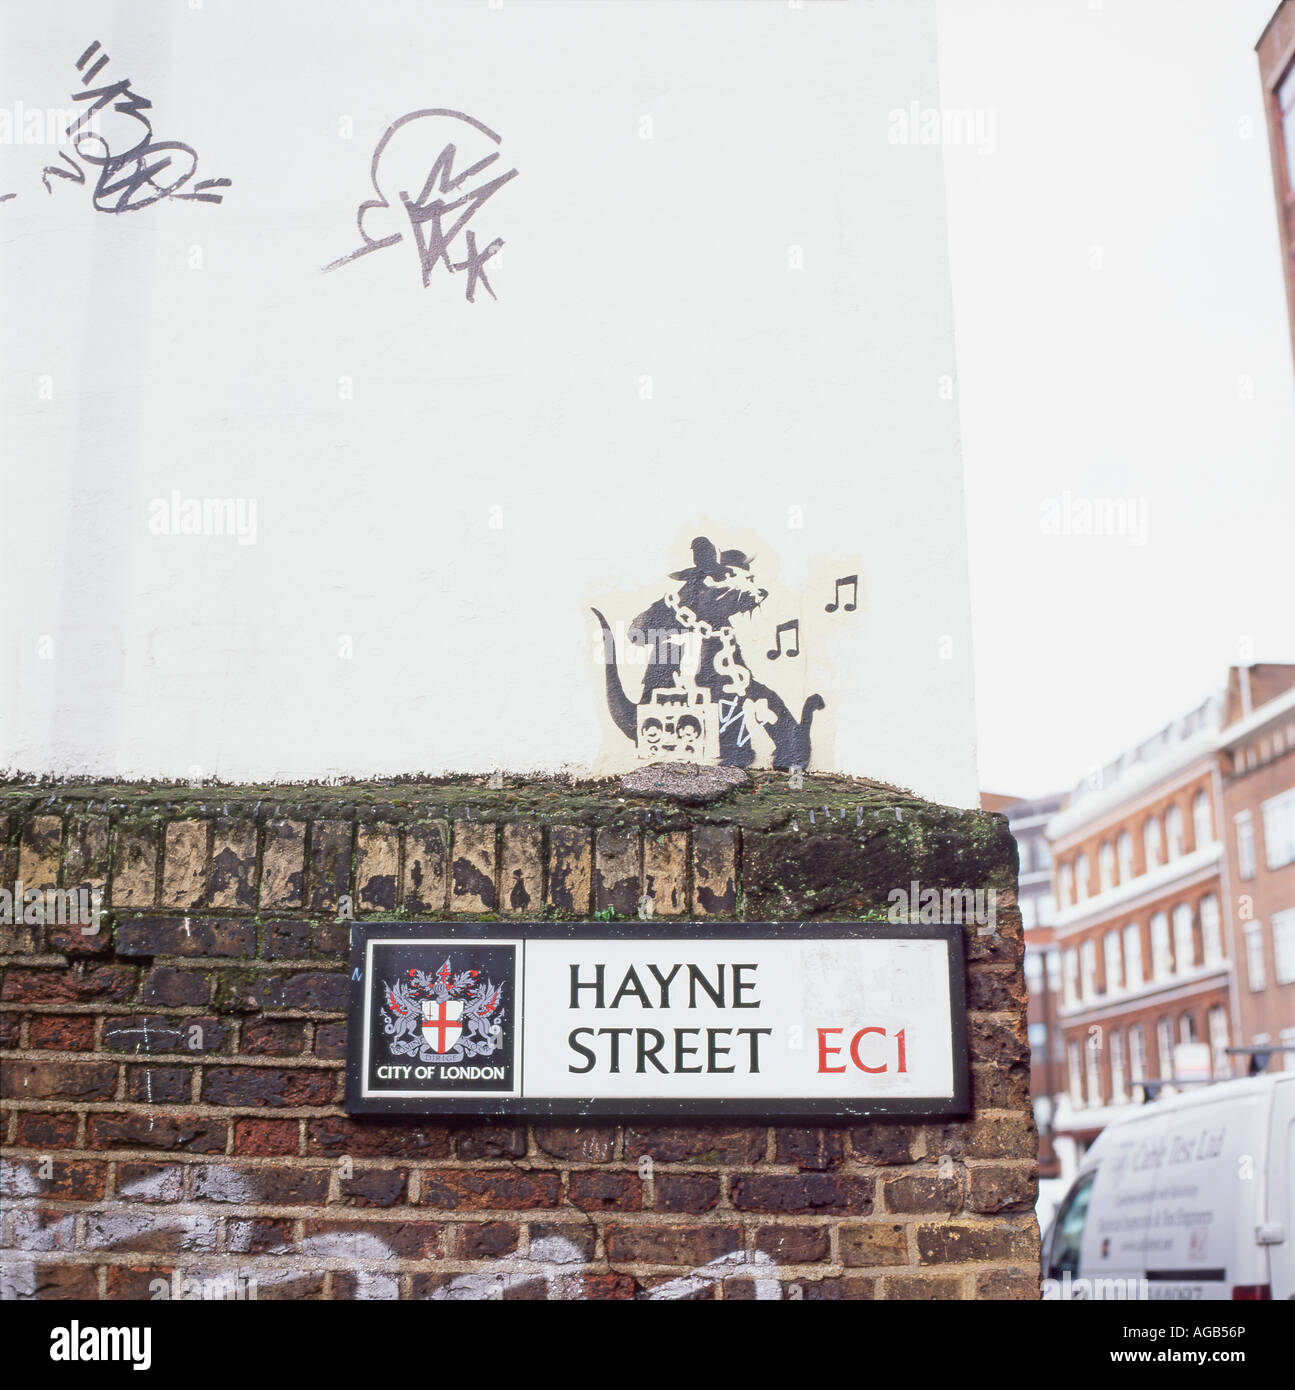 Banksy rat grafitti on a wall Haynes Street, Clerkenwell, London, England, UK  KATHY DEWITT - Stock Image